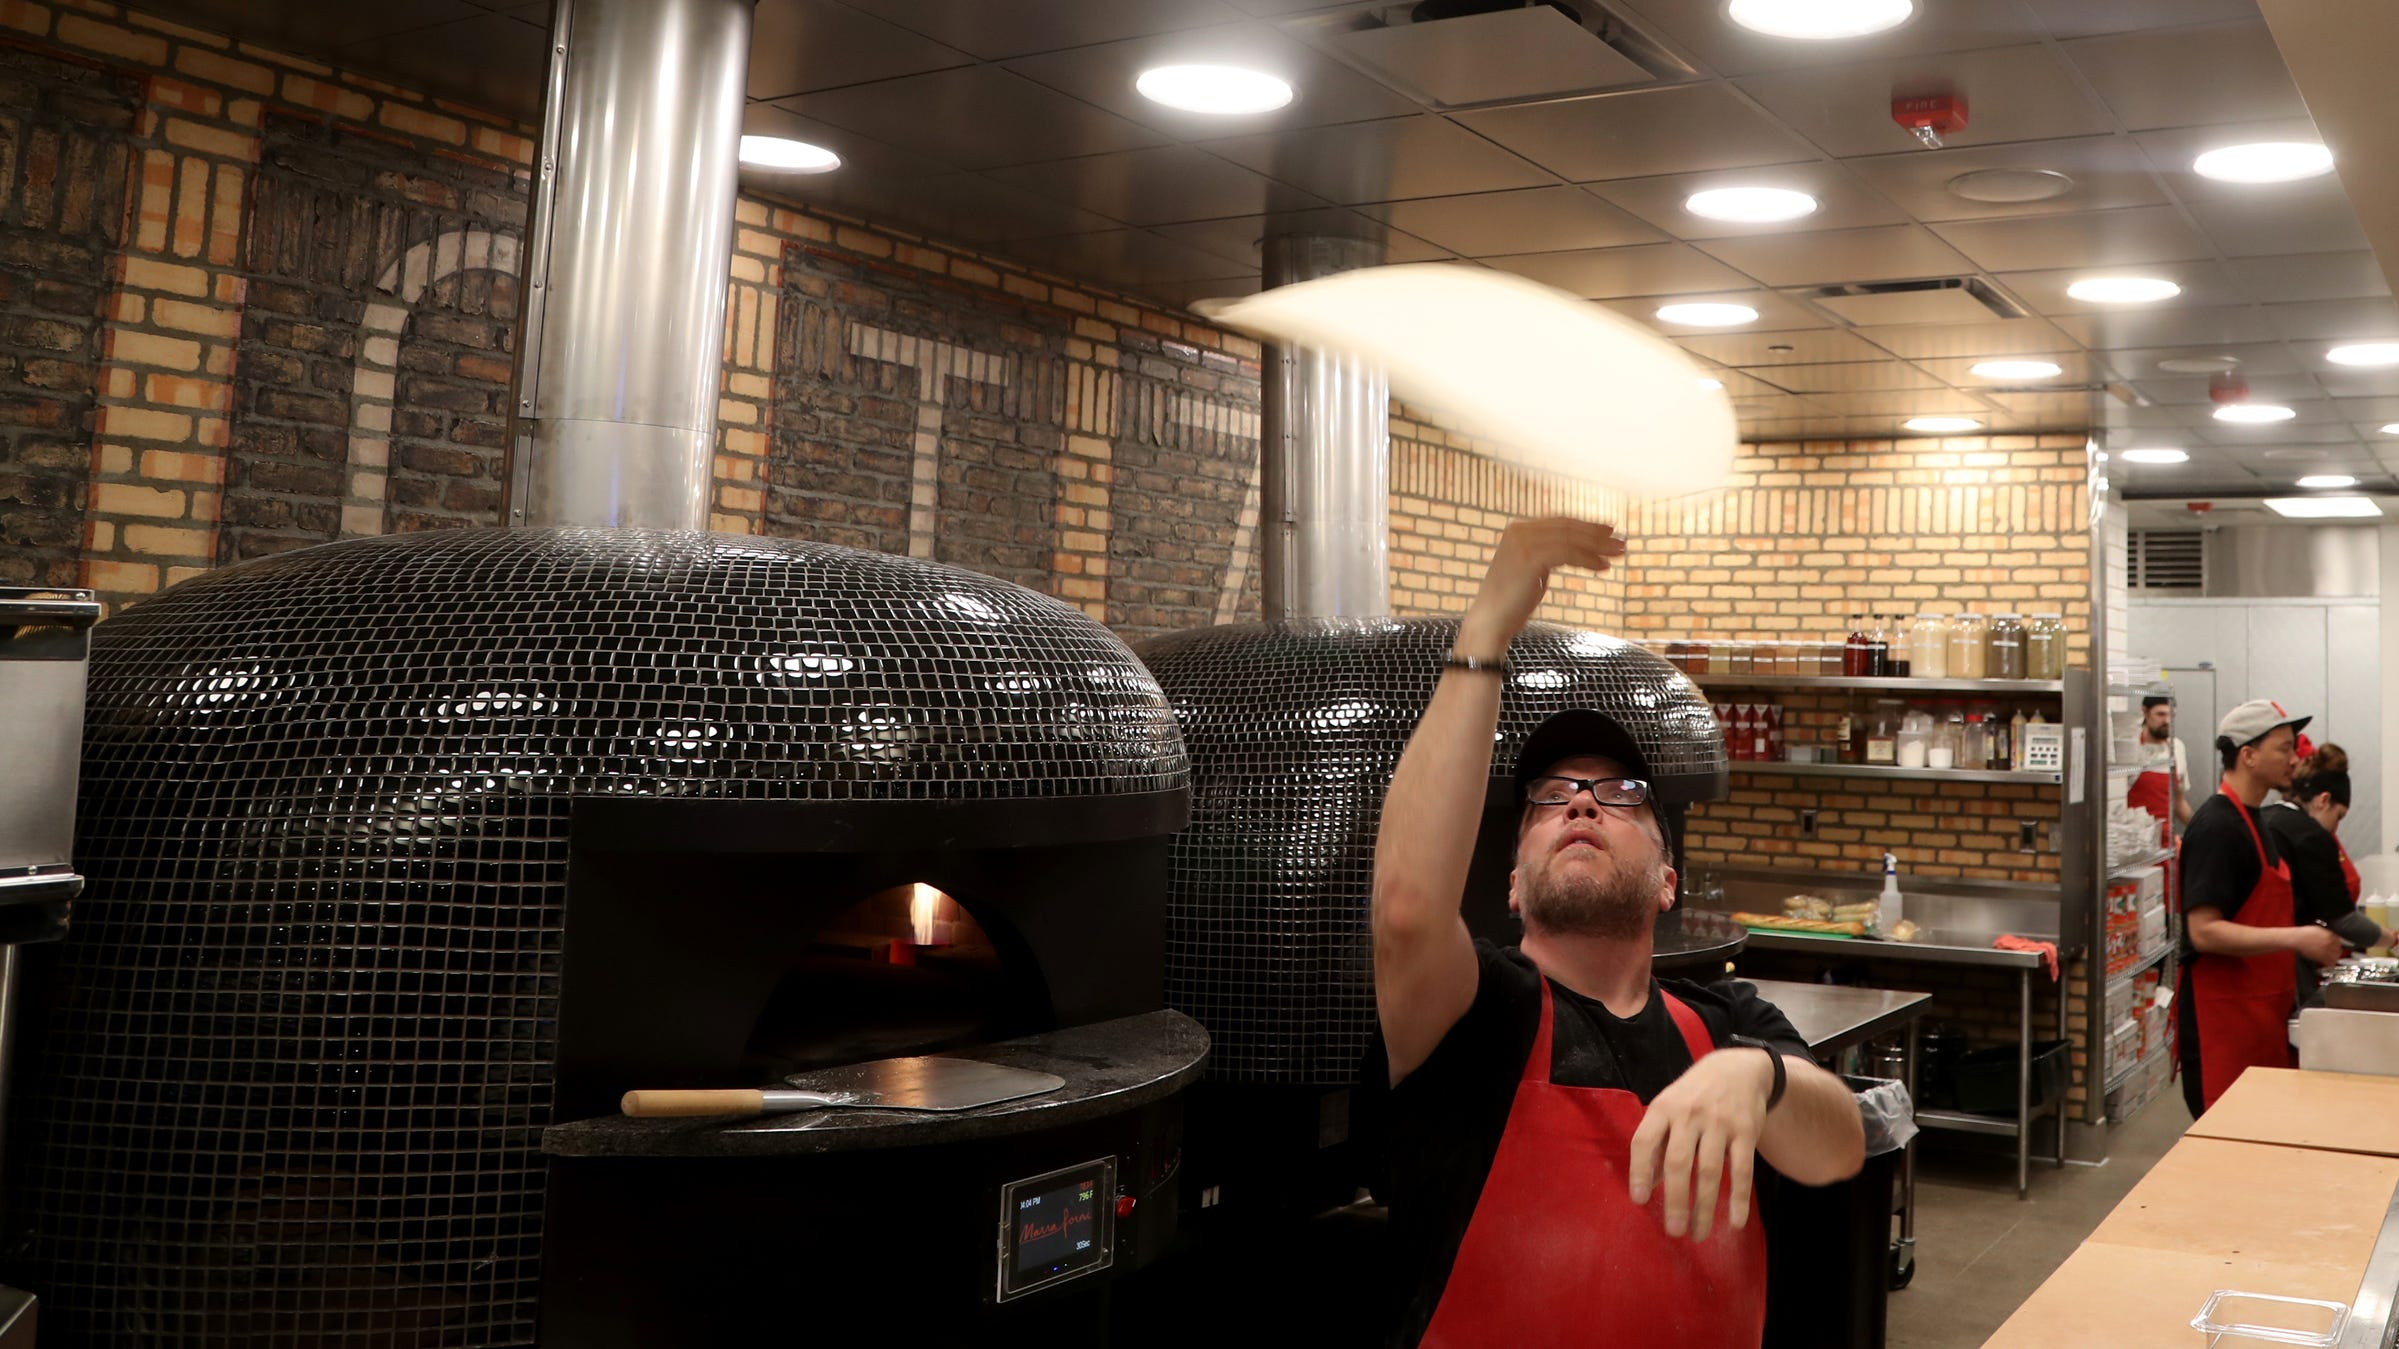 Bruno DiFabio, 49, tosses pizza dough in the air to shape it inside Mootz Pizzeria and Bar on Wednesday, January 9, 2019. The new restaurant that serves a variety of classic Italian food and large pizza slices is set to open on January, 28, 2019.